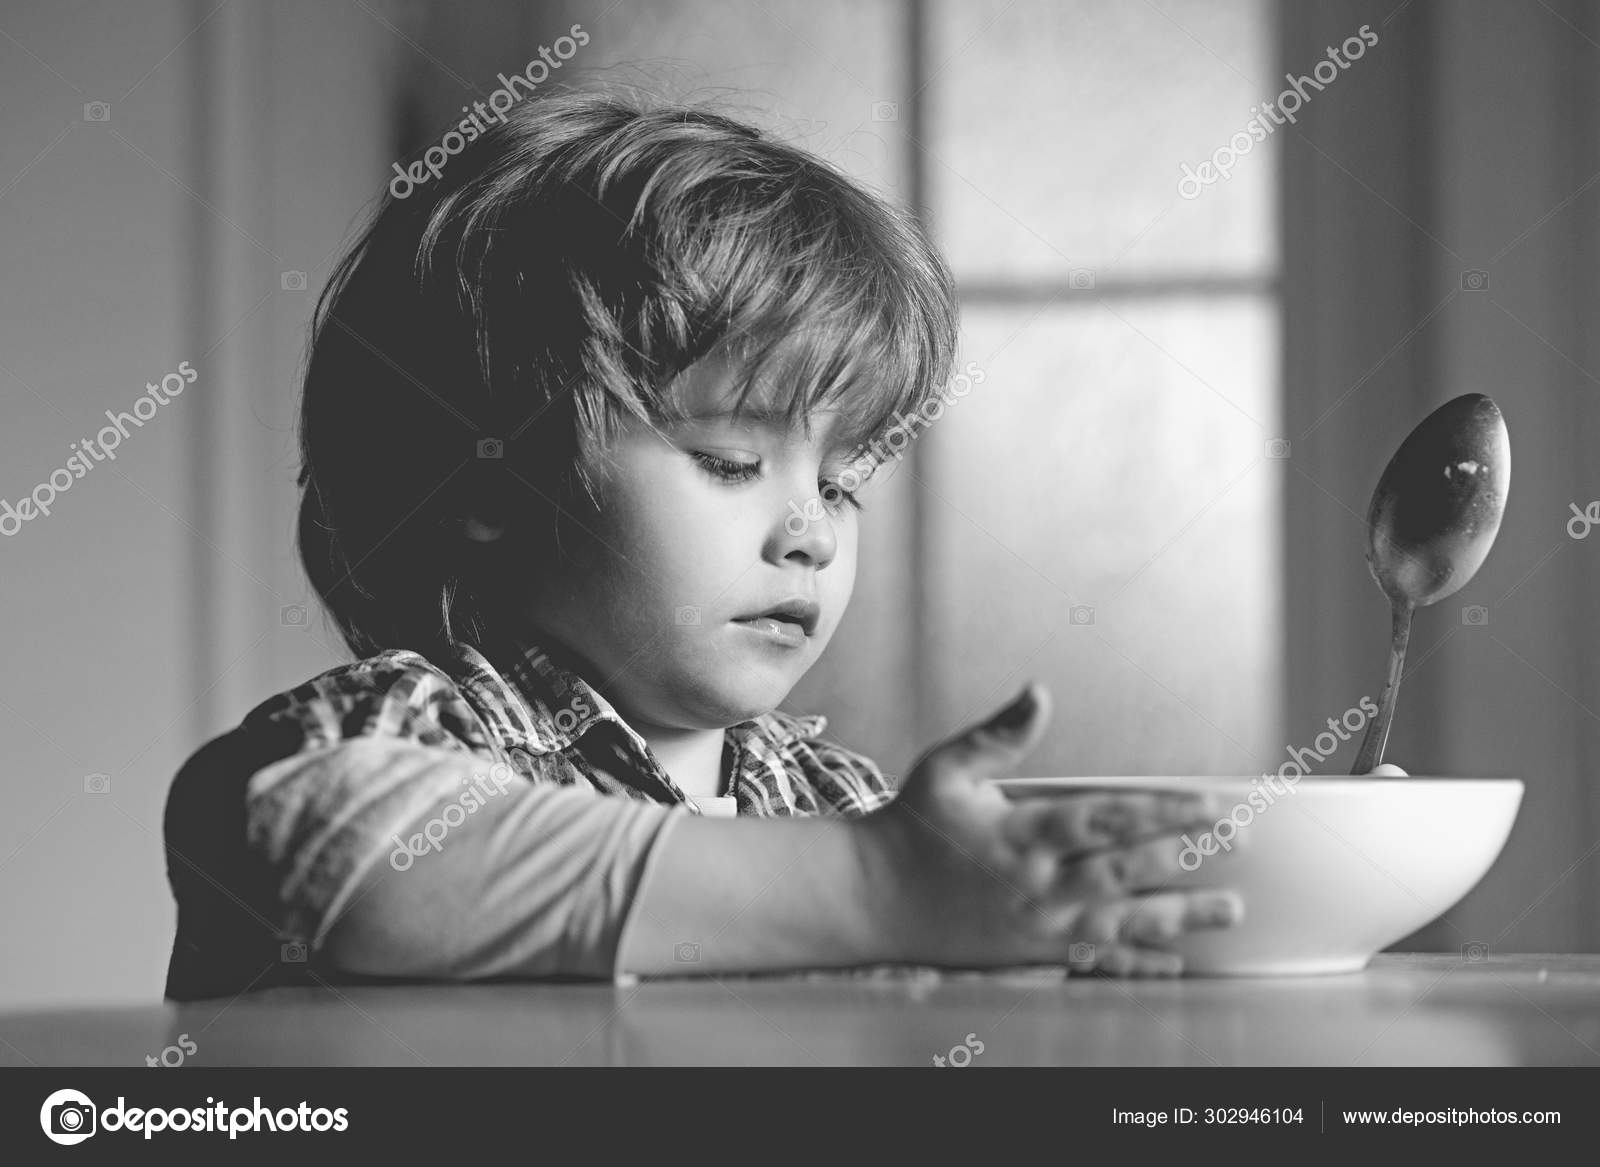 Kid Boy Eating Healthy Food At Home Good Morning In Happy Family Little Boy Sitting At The Table And Eating Milk Snack Stock Photo C Tverdohlib Com 302946104